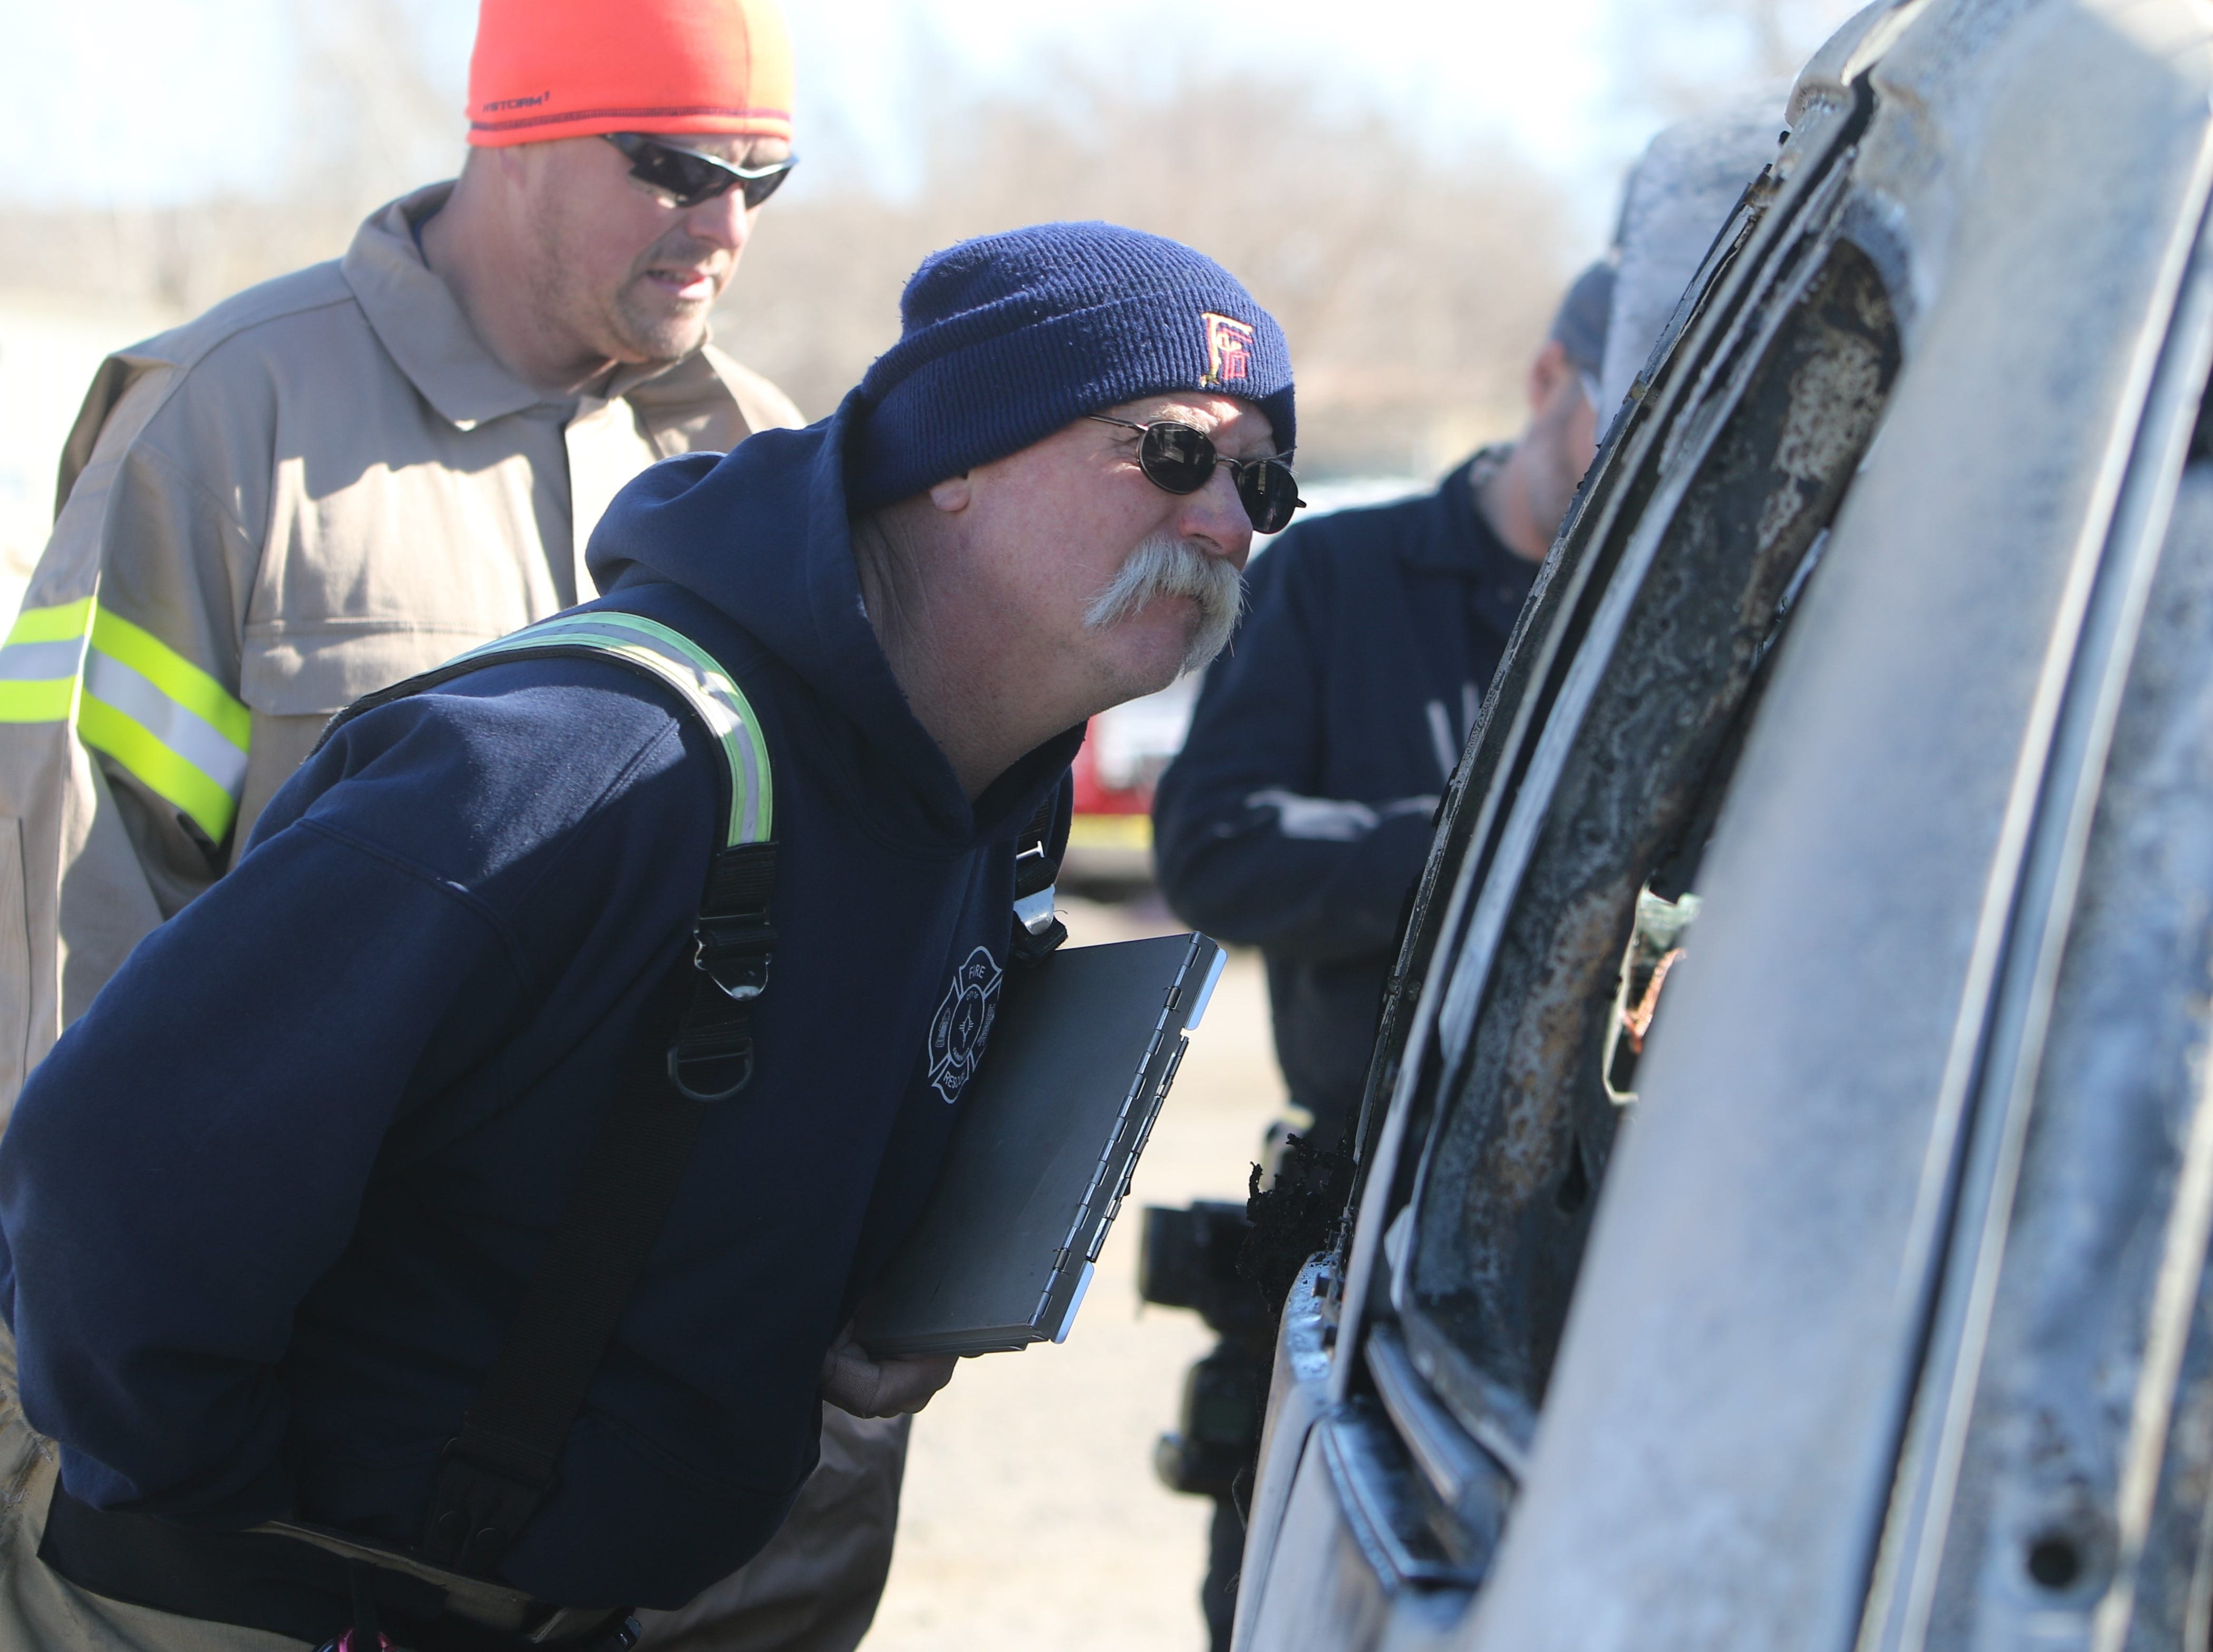 Kipp Rix, a fire investigator with the Farmington and San Juan County fire departments, examines the remains of a charred van as part of a training exercise on Wednesday.